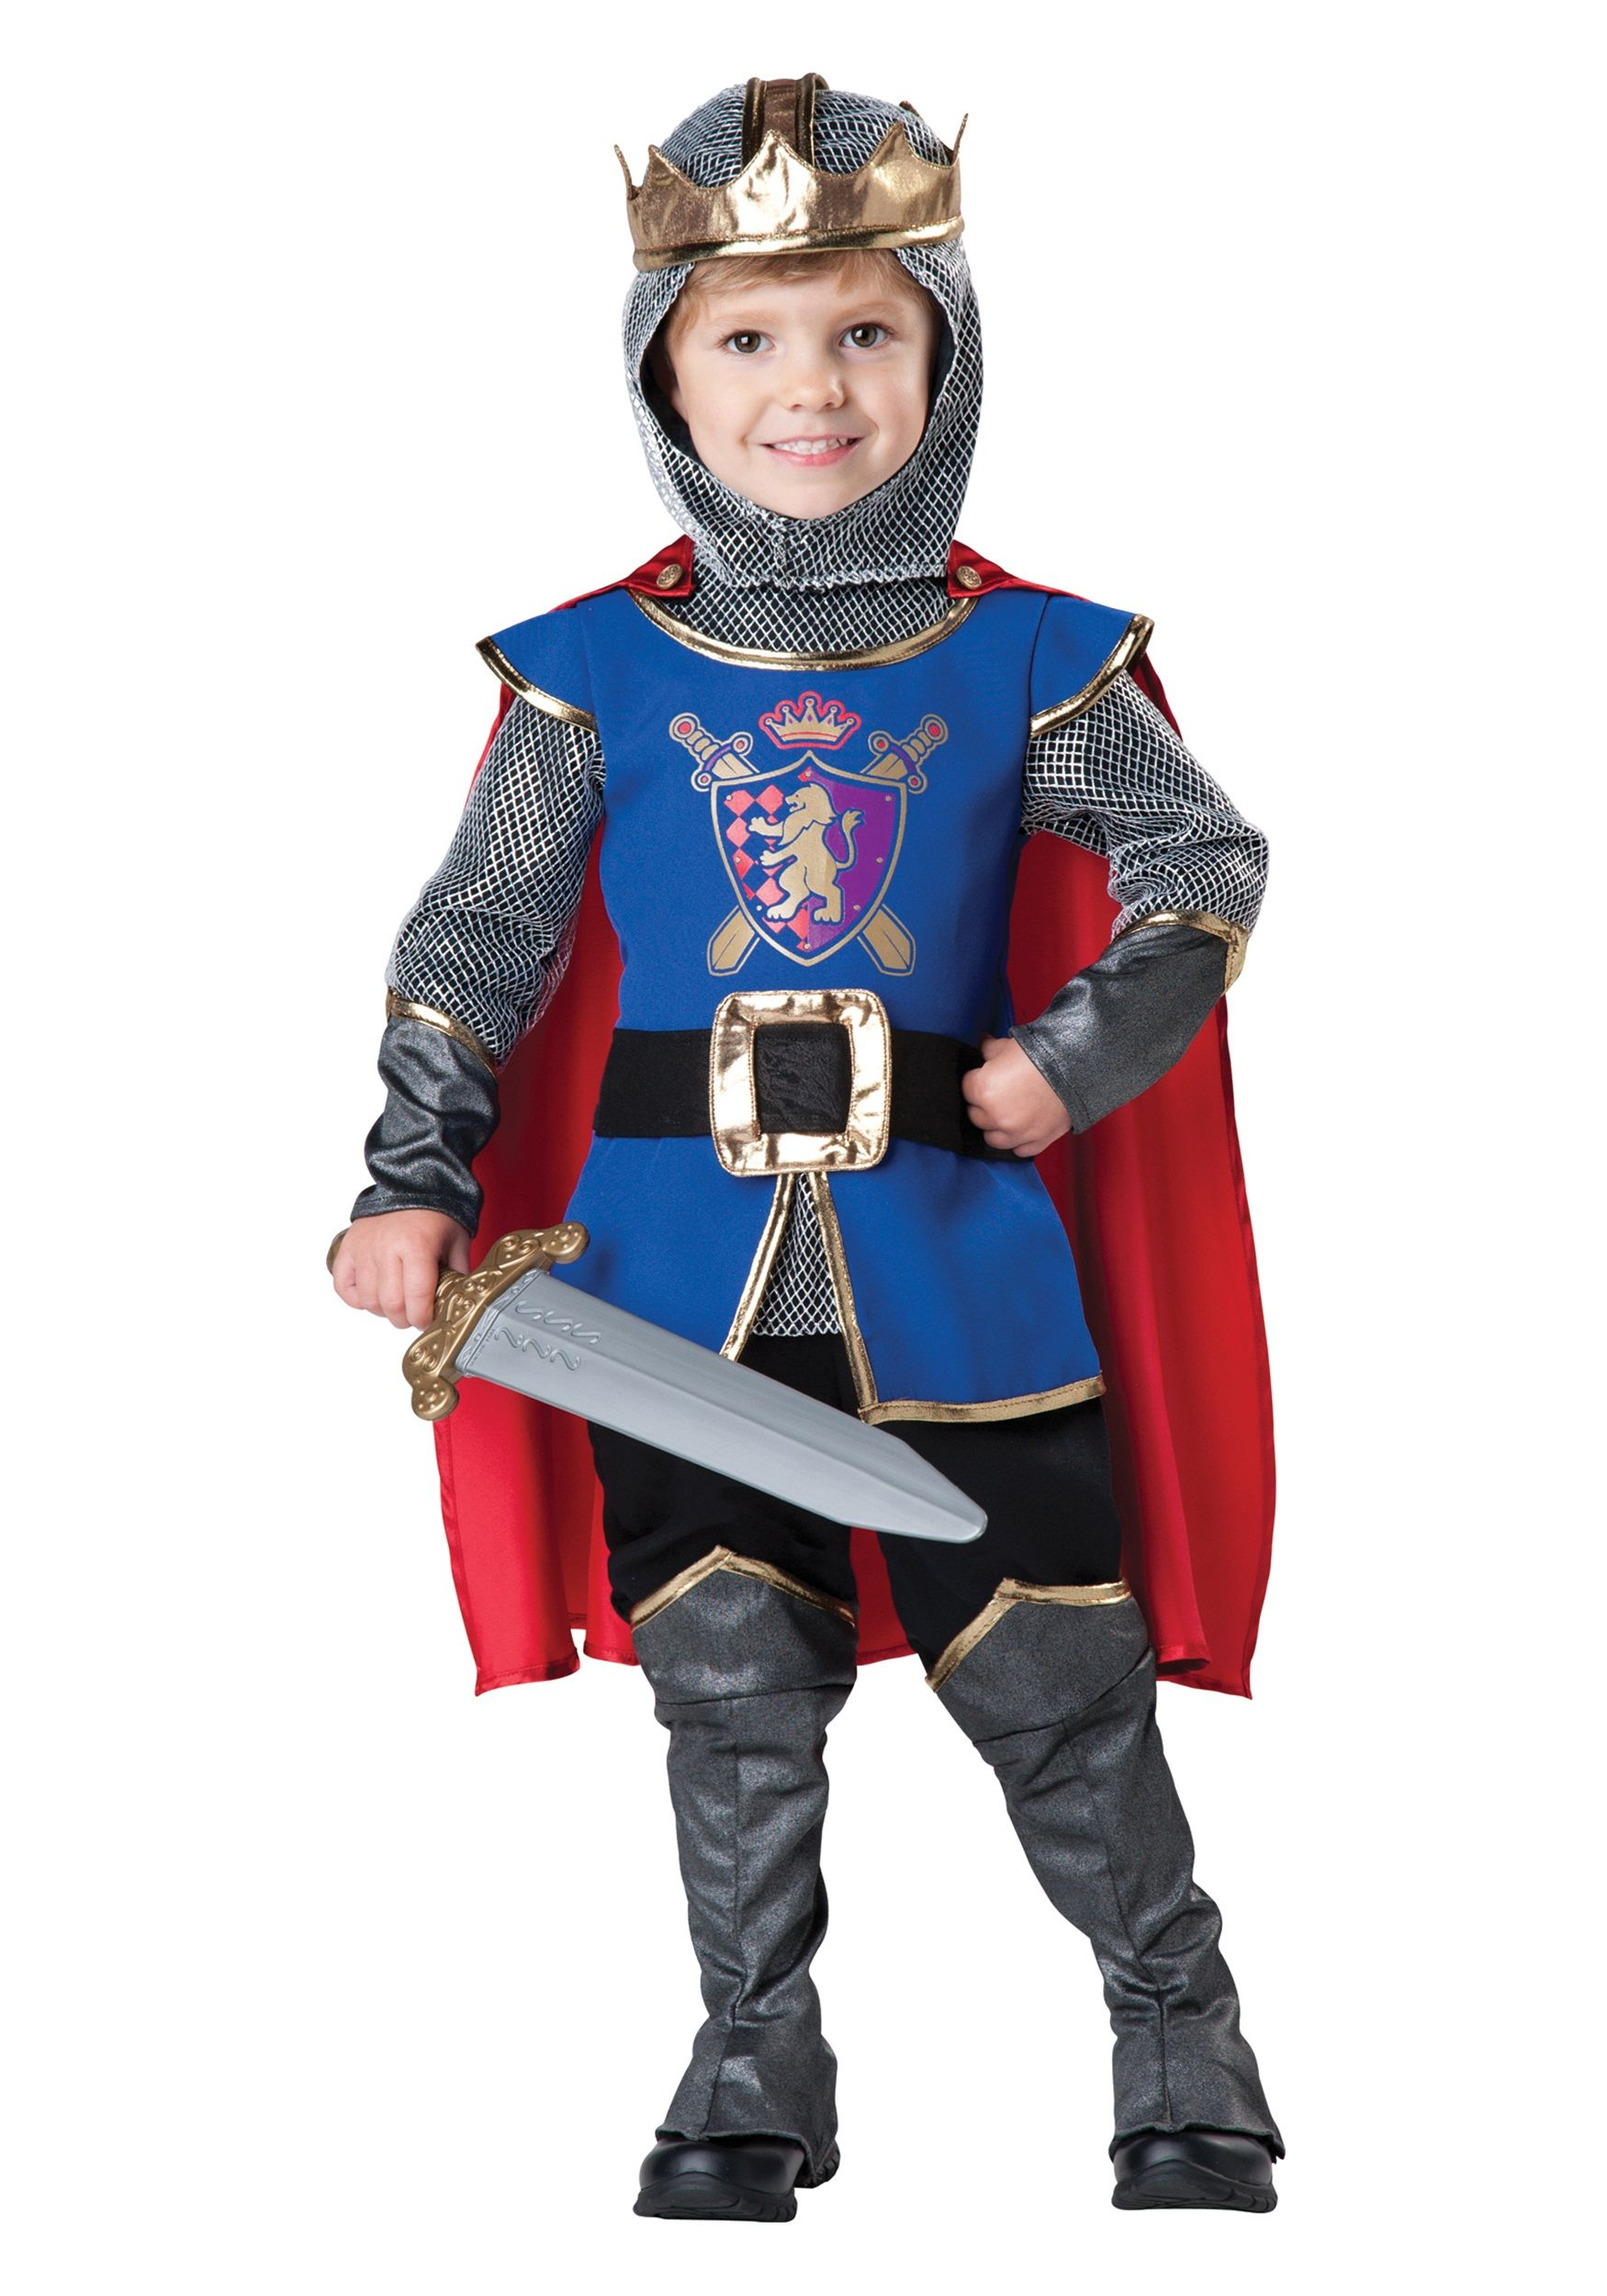 High Quality Halloween Costumes Canada Find great